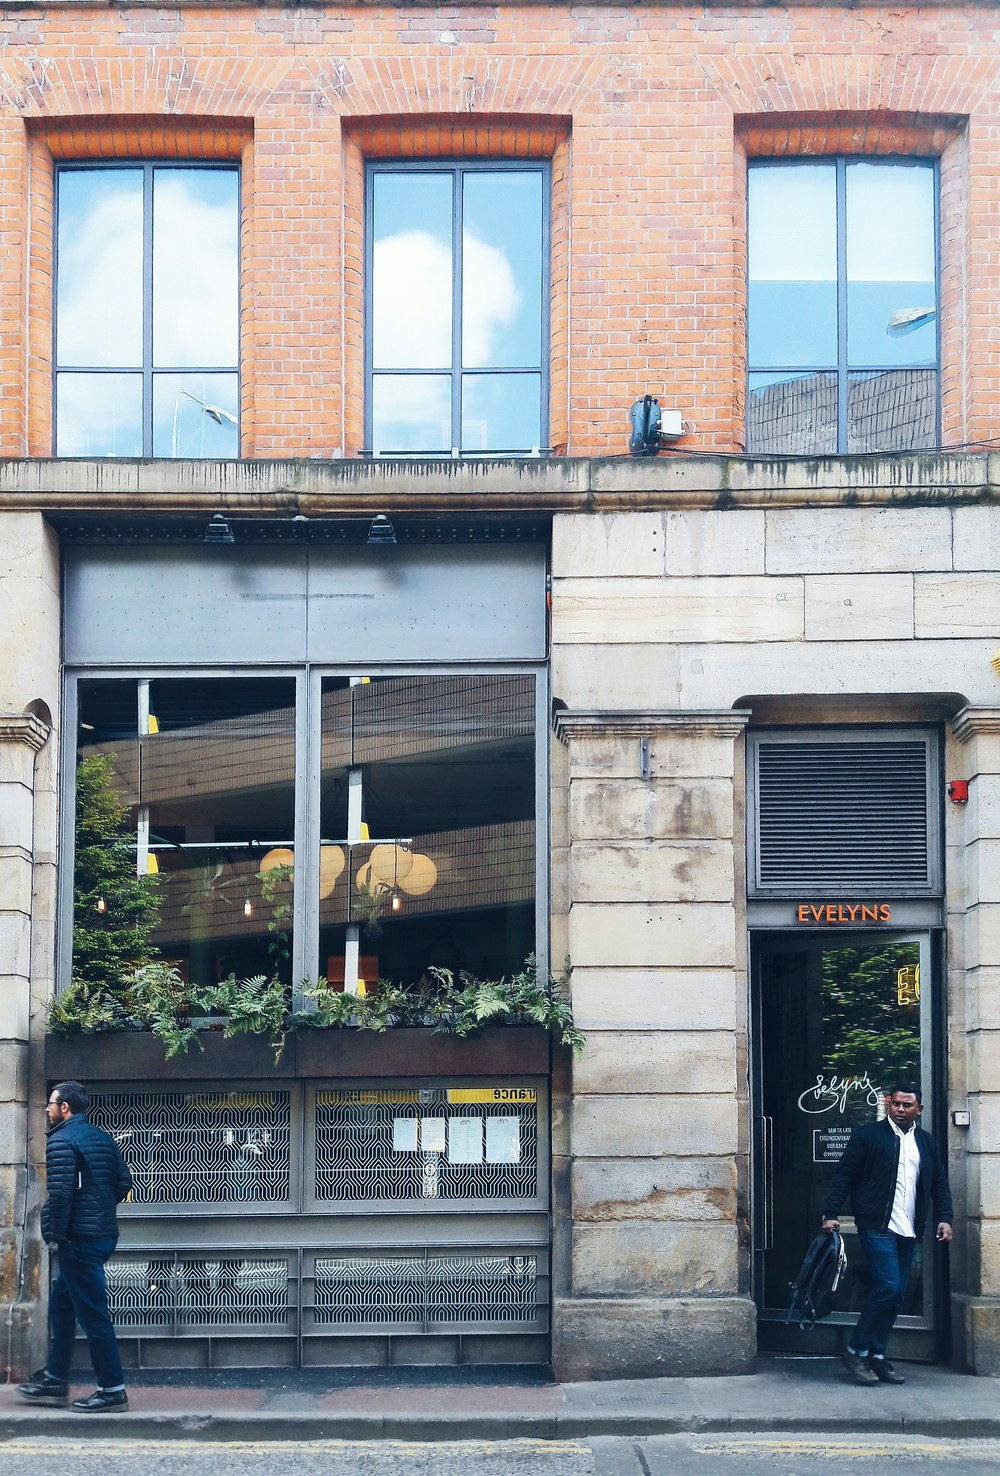 Evelyn's, Smithfield Building, Northern Quarter, Manchester